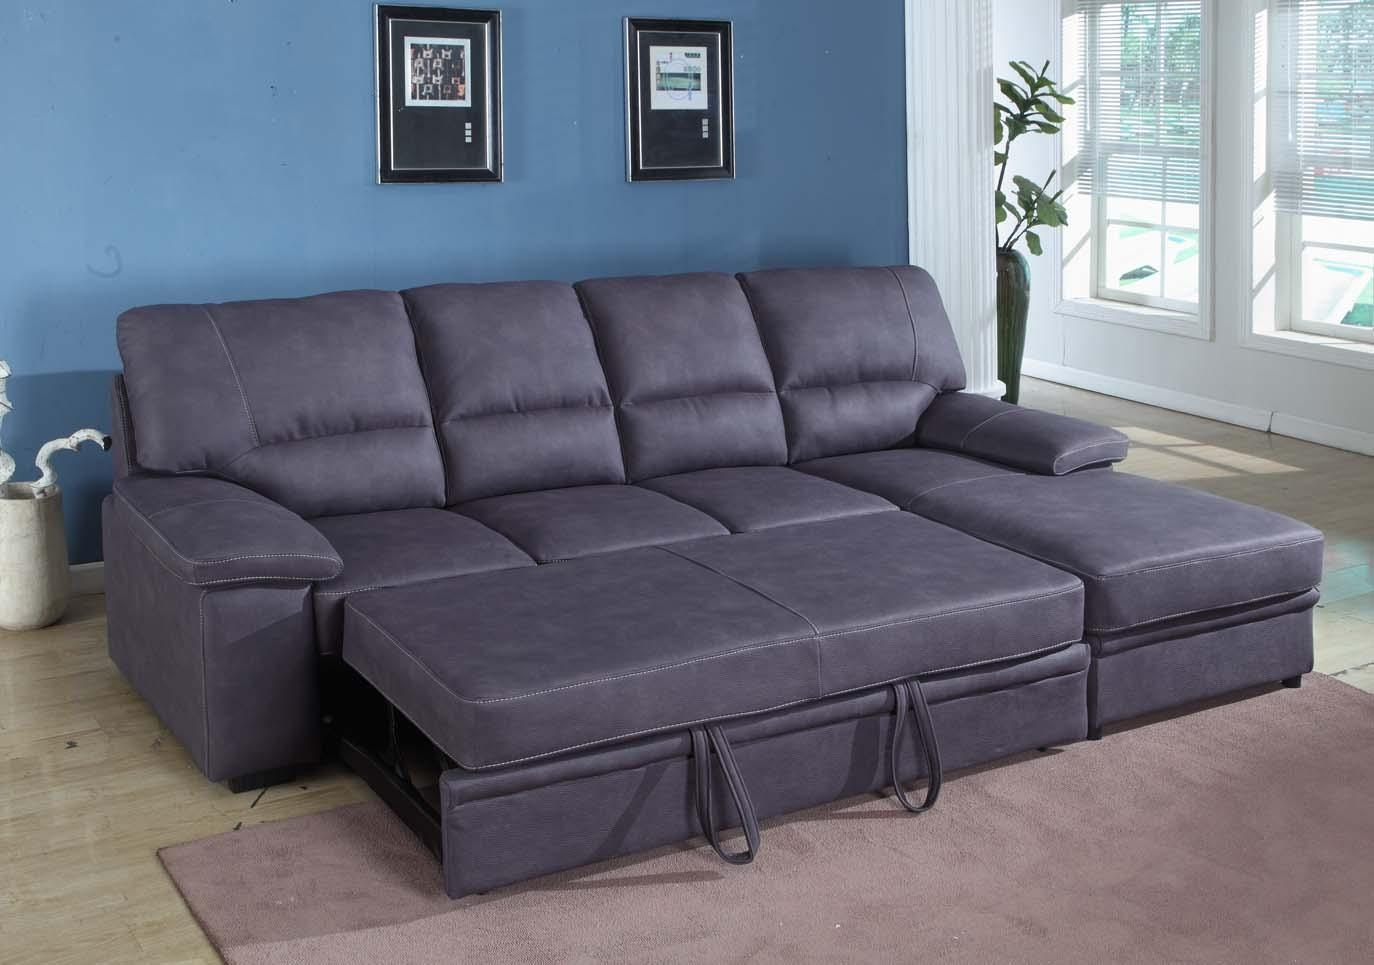 Gray Sectional Sofa | Home Designjohn With King Size Sleeper Sofa Sectional (Image 10 of 20)